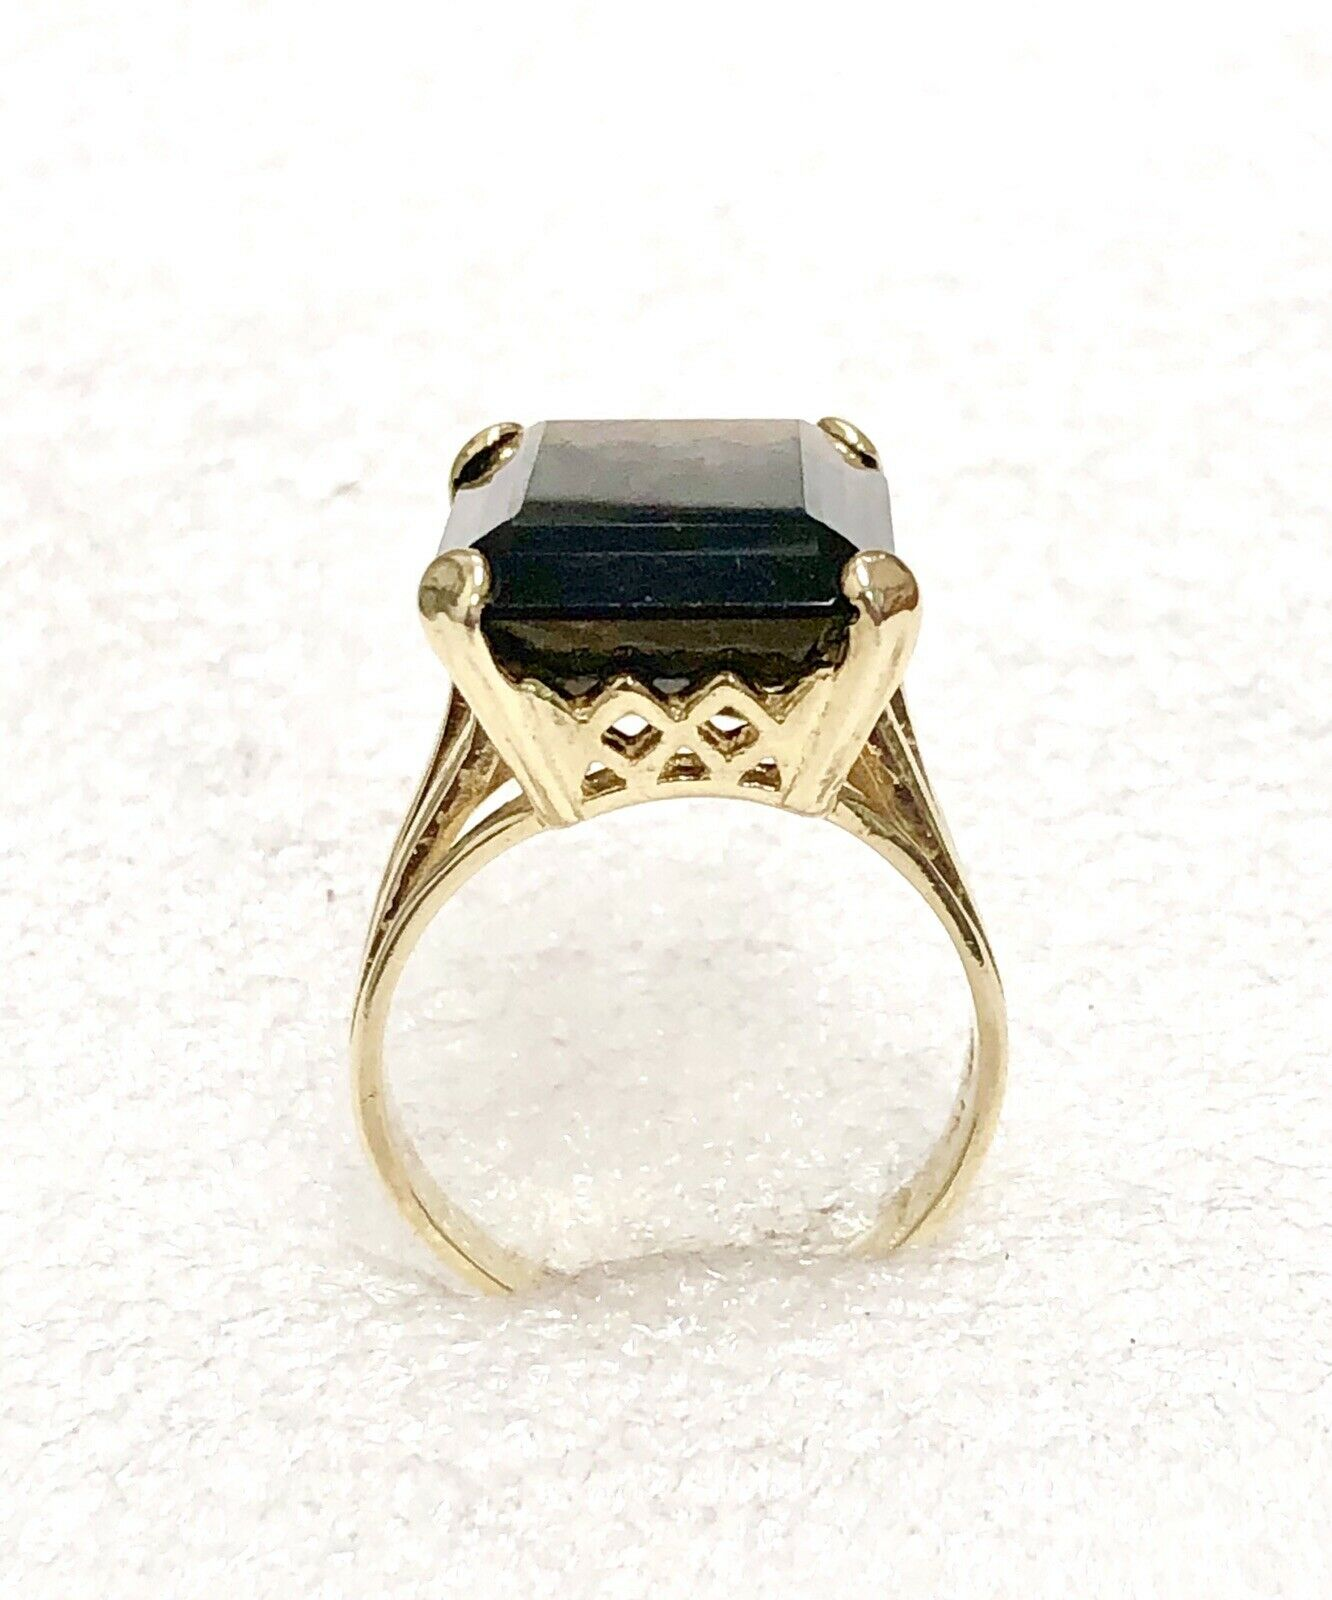 10k Solid Yellow gold Emerald Cut 15 CT. Smokey Topaz Ladies Ring Size 7.5